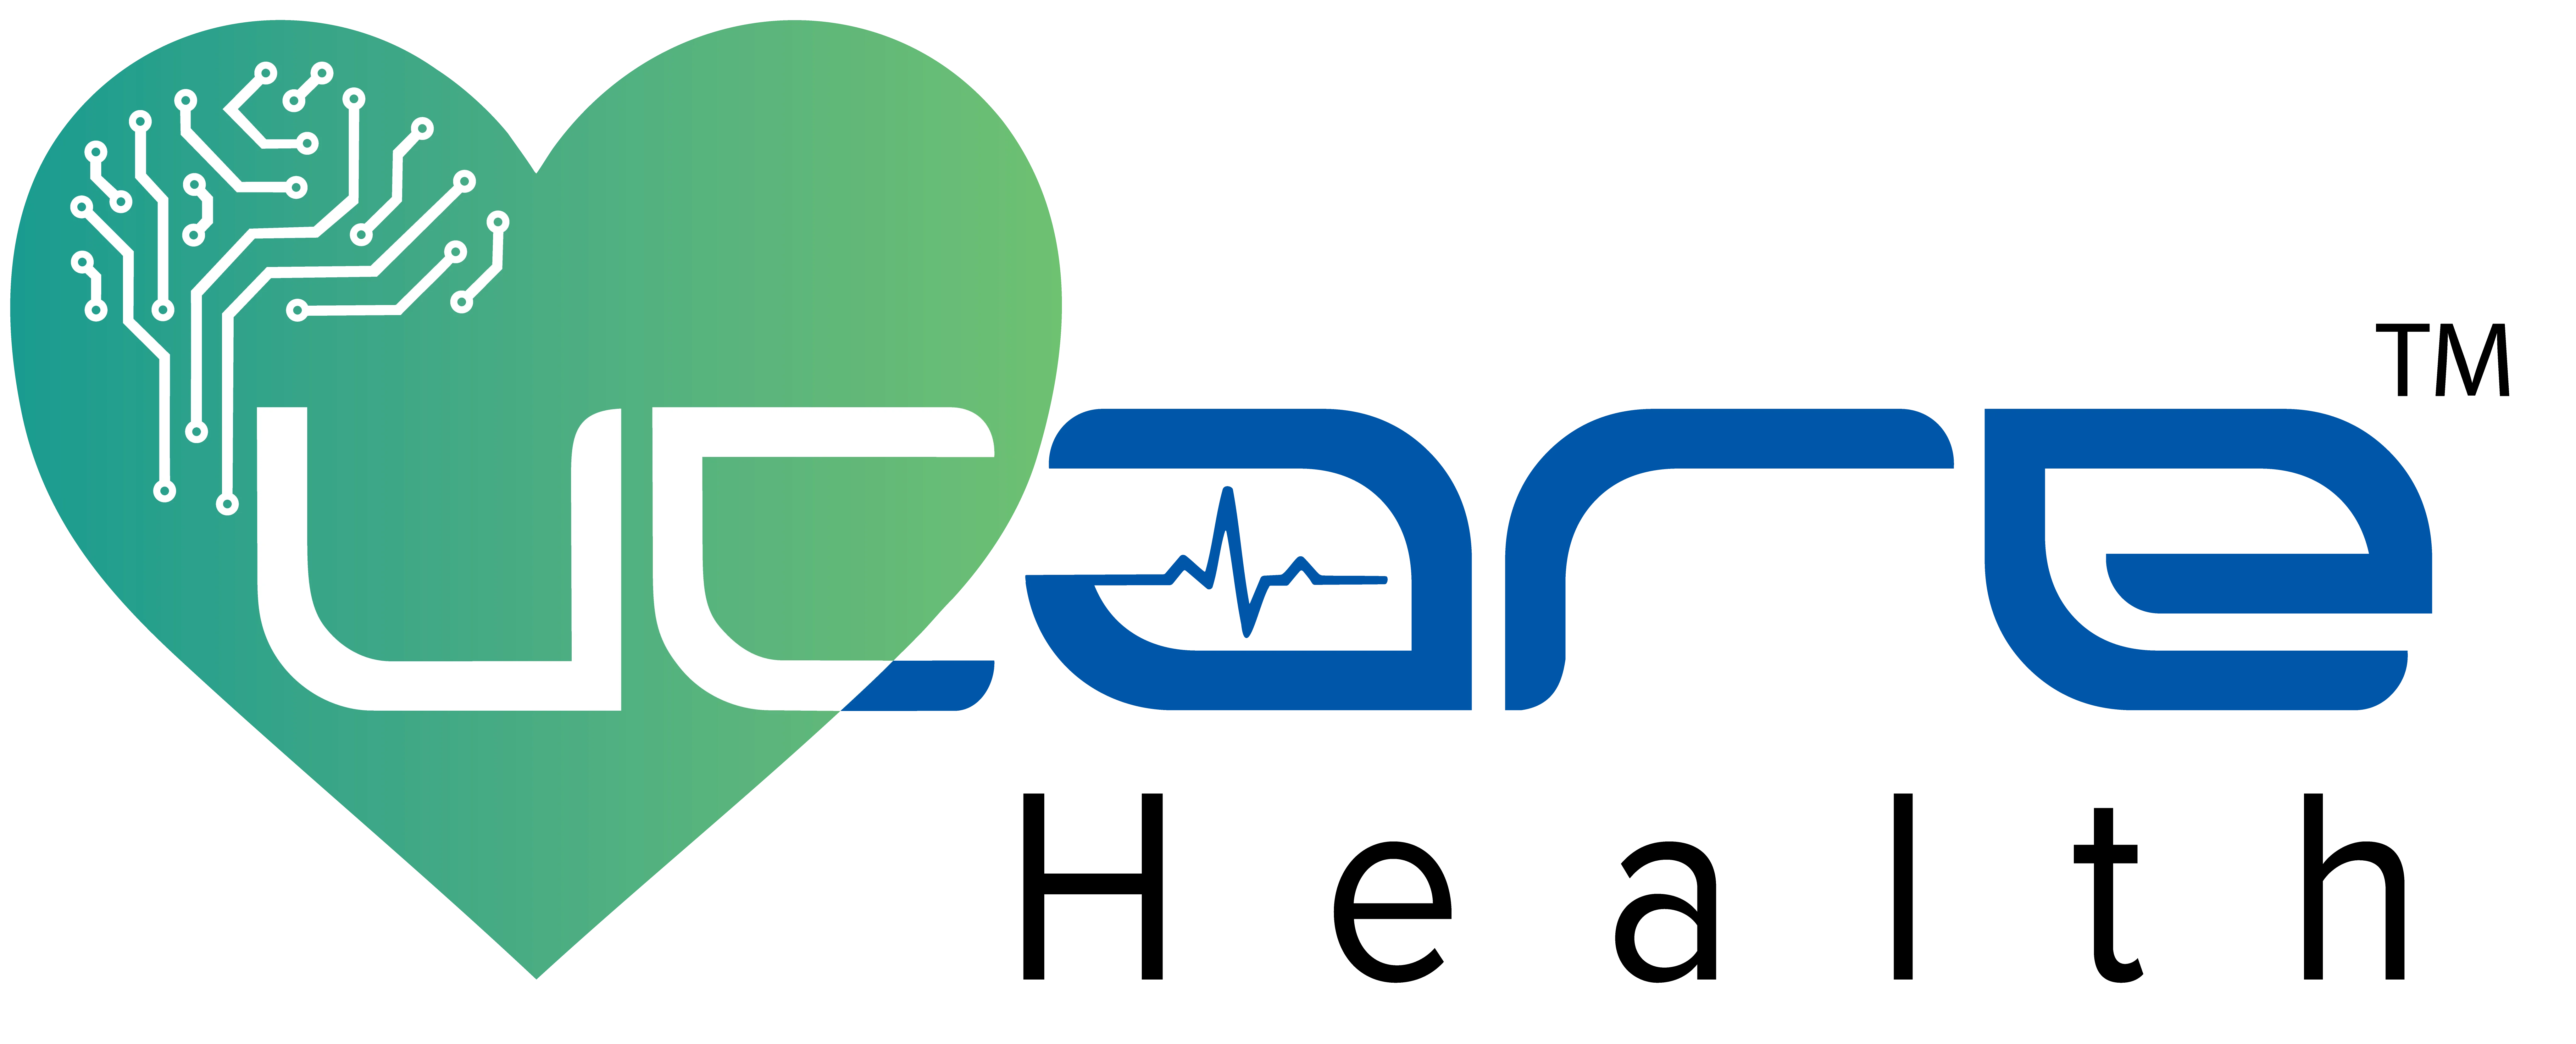 Ucare Digital Preventive Healthcare & remote health monitoring Platform